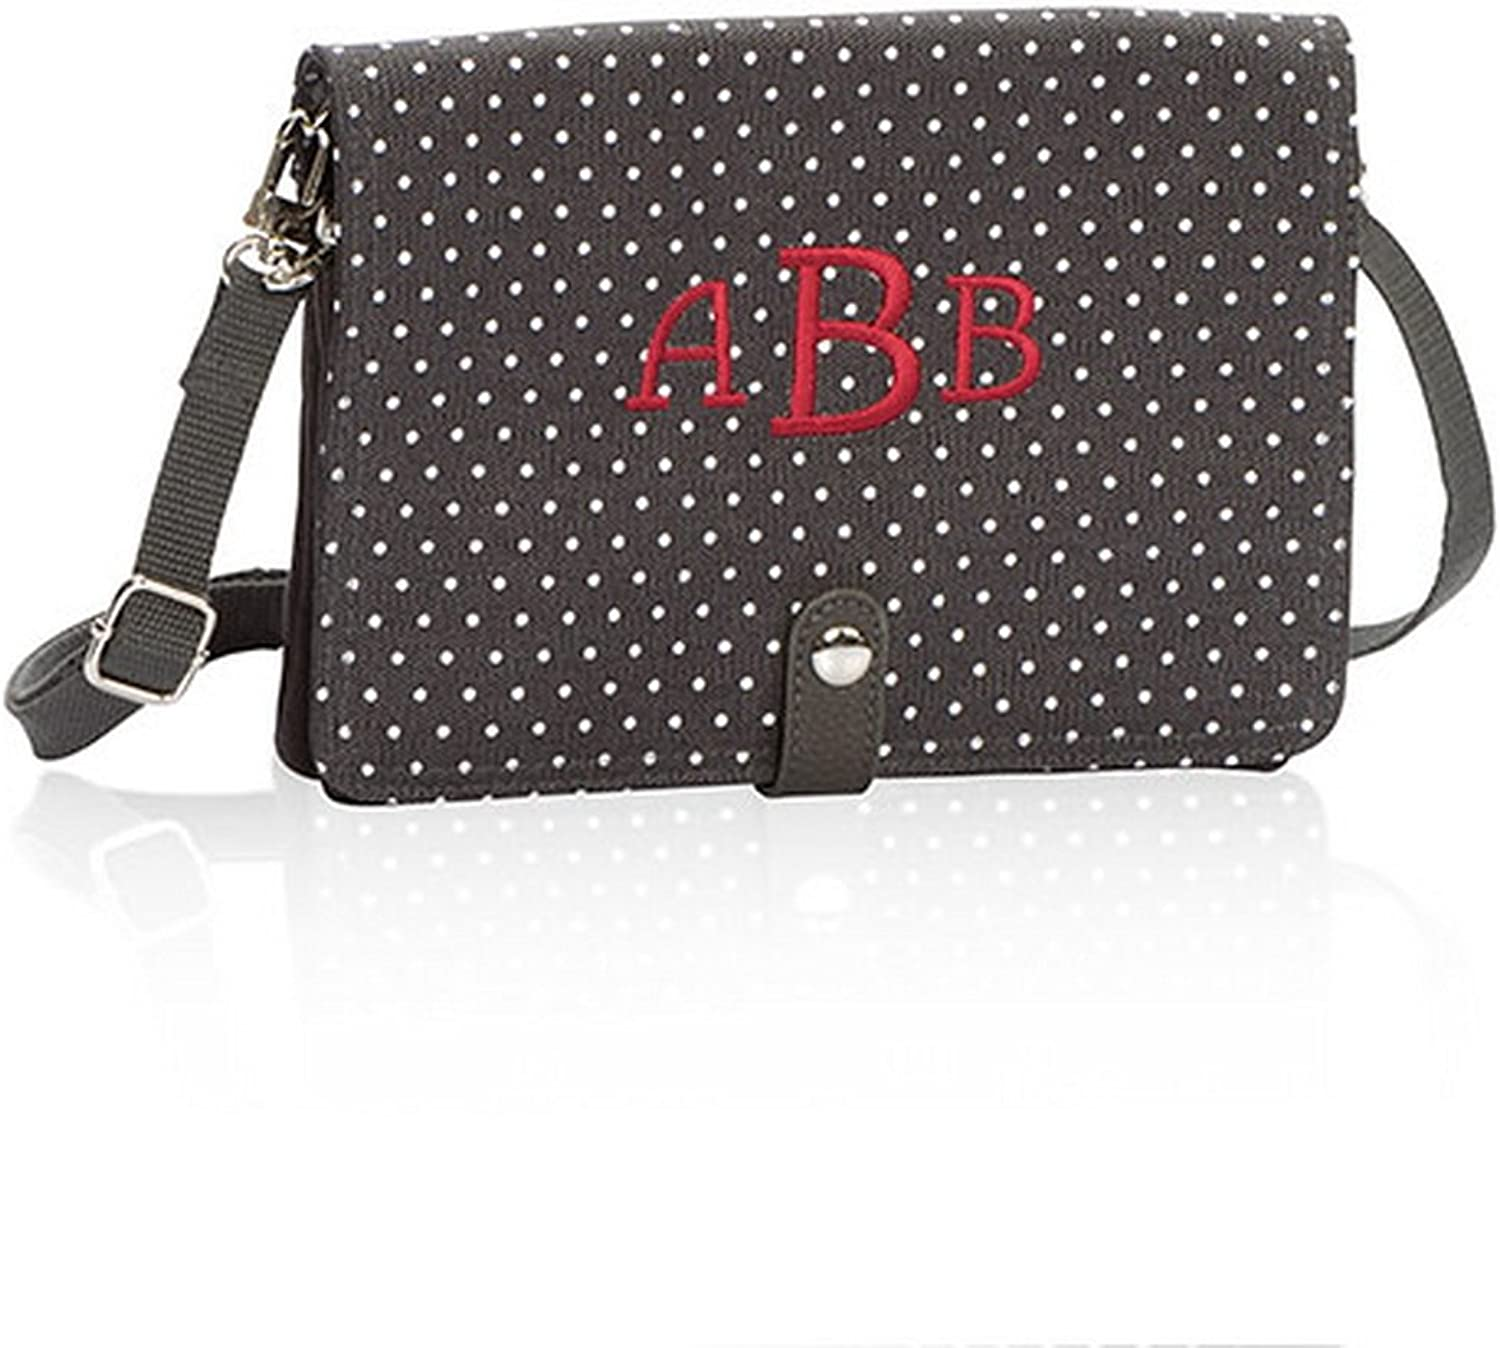 Thirty One Double Up Crossbody in City Charcoal Swiss Dot  No Monogram  6204